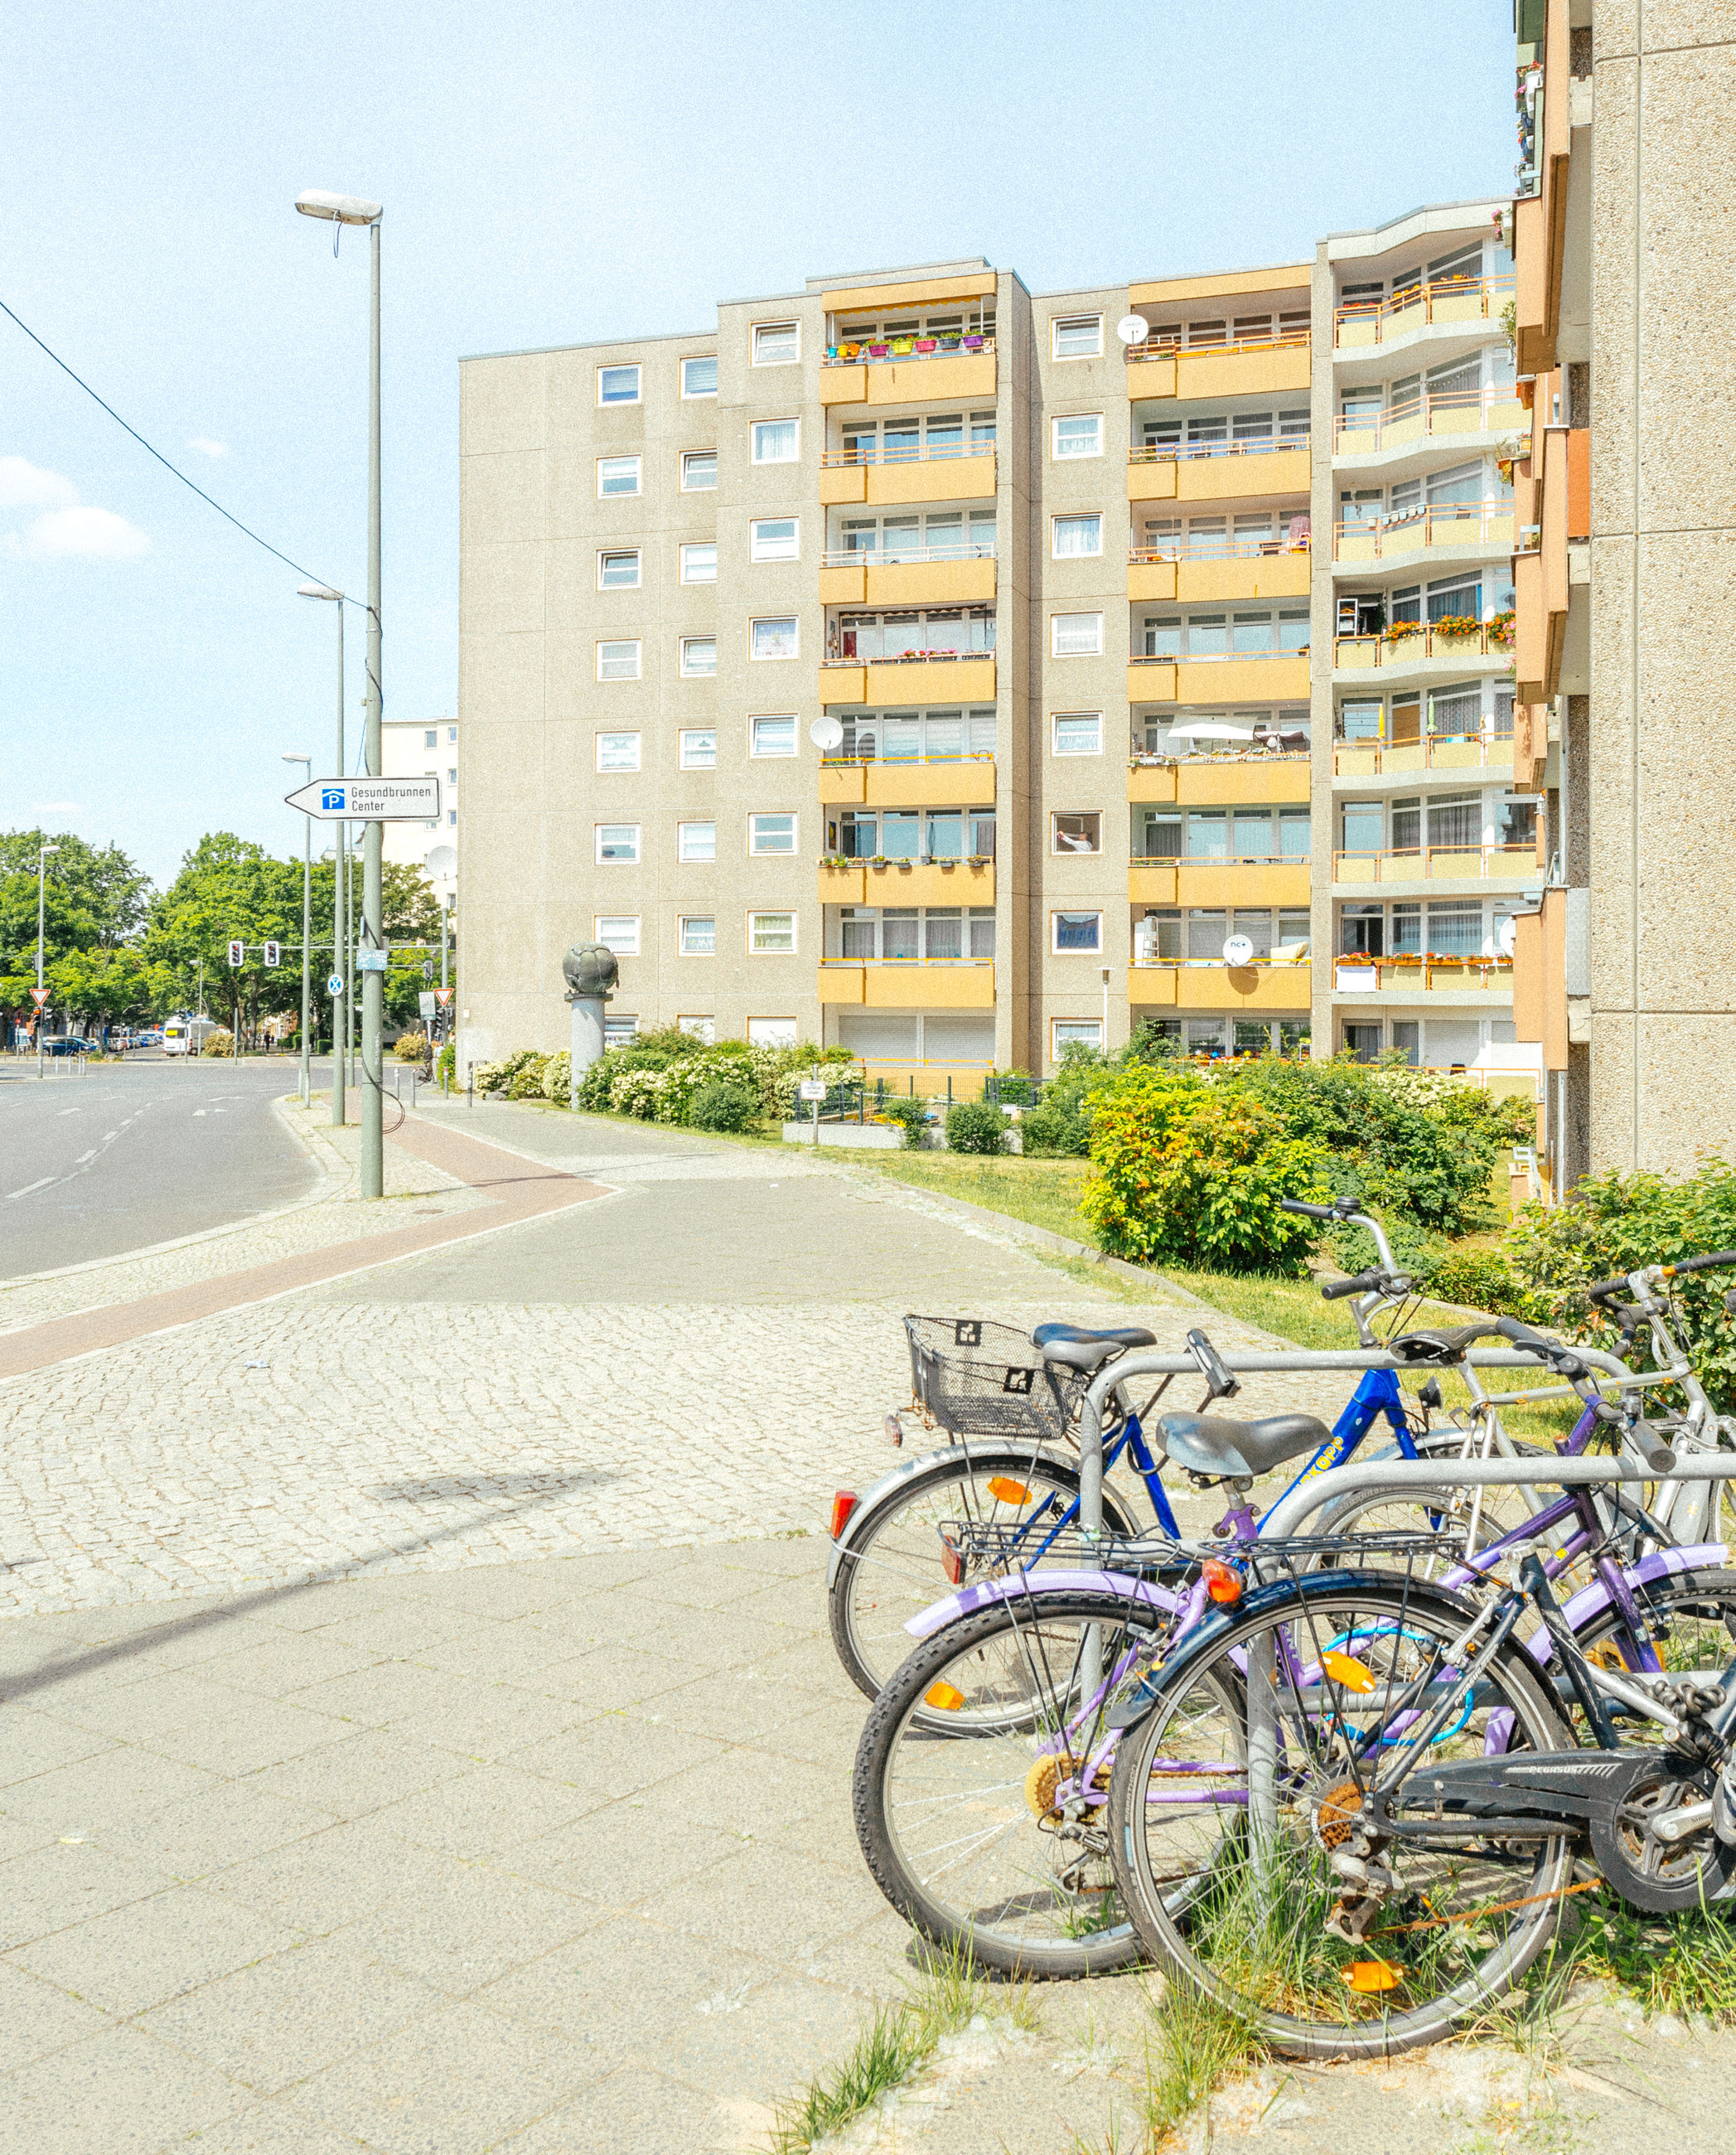 architecture, building exterior, city, bicycle, built structure, transportation, residential area, building, street, mode of transportation, vehicle, neighbourhood, land vehicle, nature, residential district, city life, day, no people, bicycle wheel, road, sky, city street, apartment, plant, outdoors, sports equipment, urban area, parking, sunlight, office building exterior, lane, travel, wheel, office, sunny, house, cityscape, tree, suburb, cycling